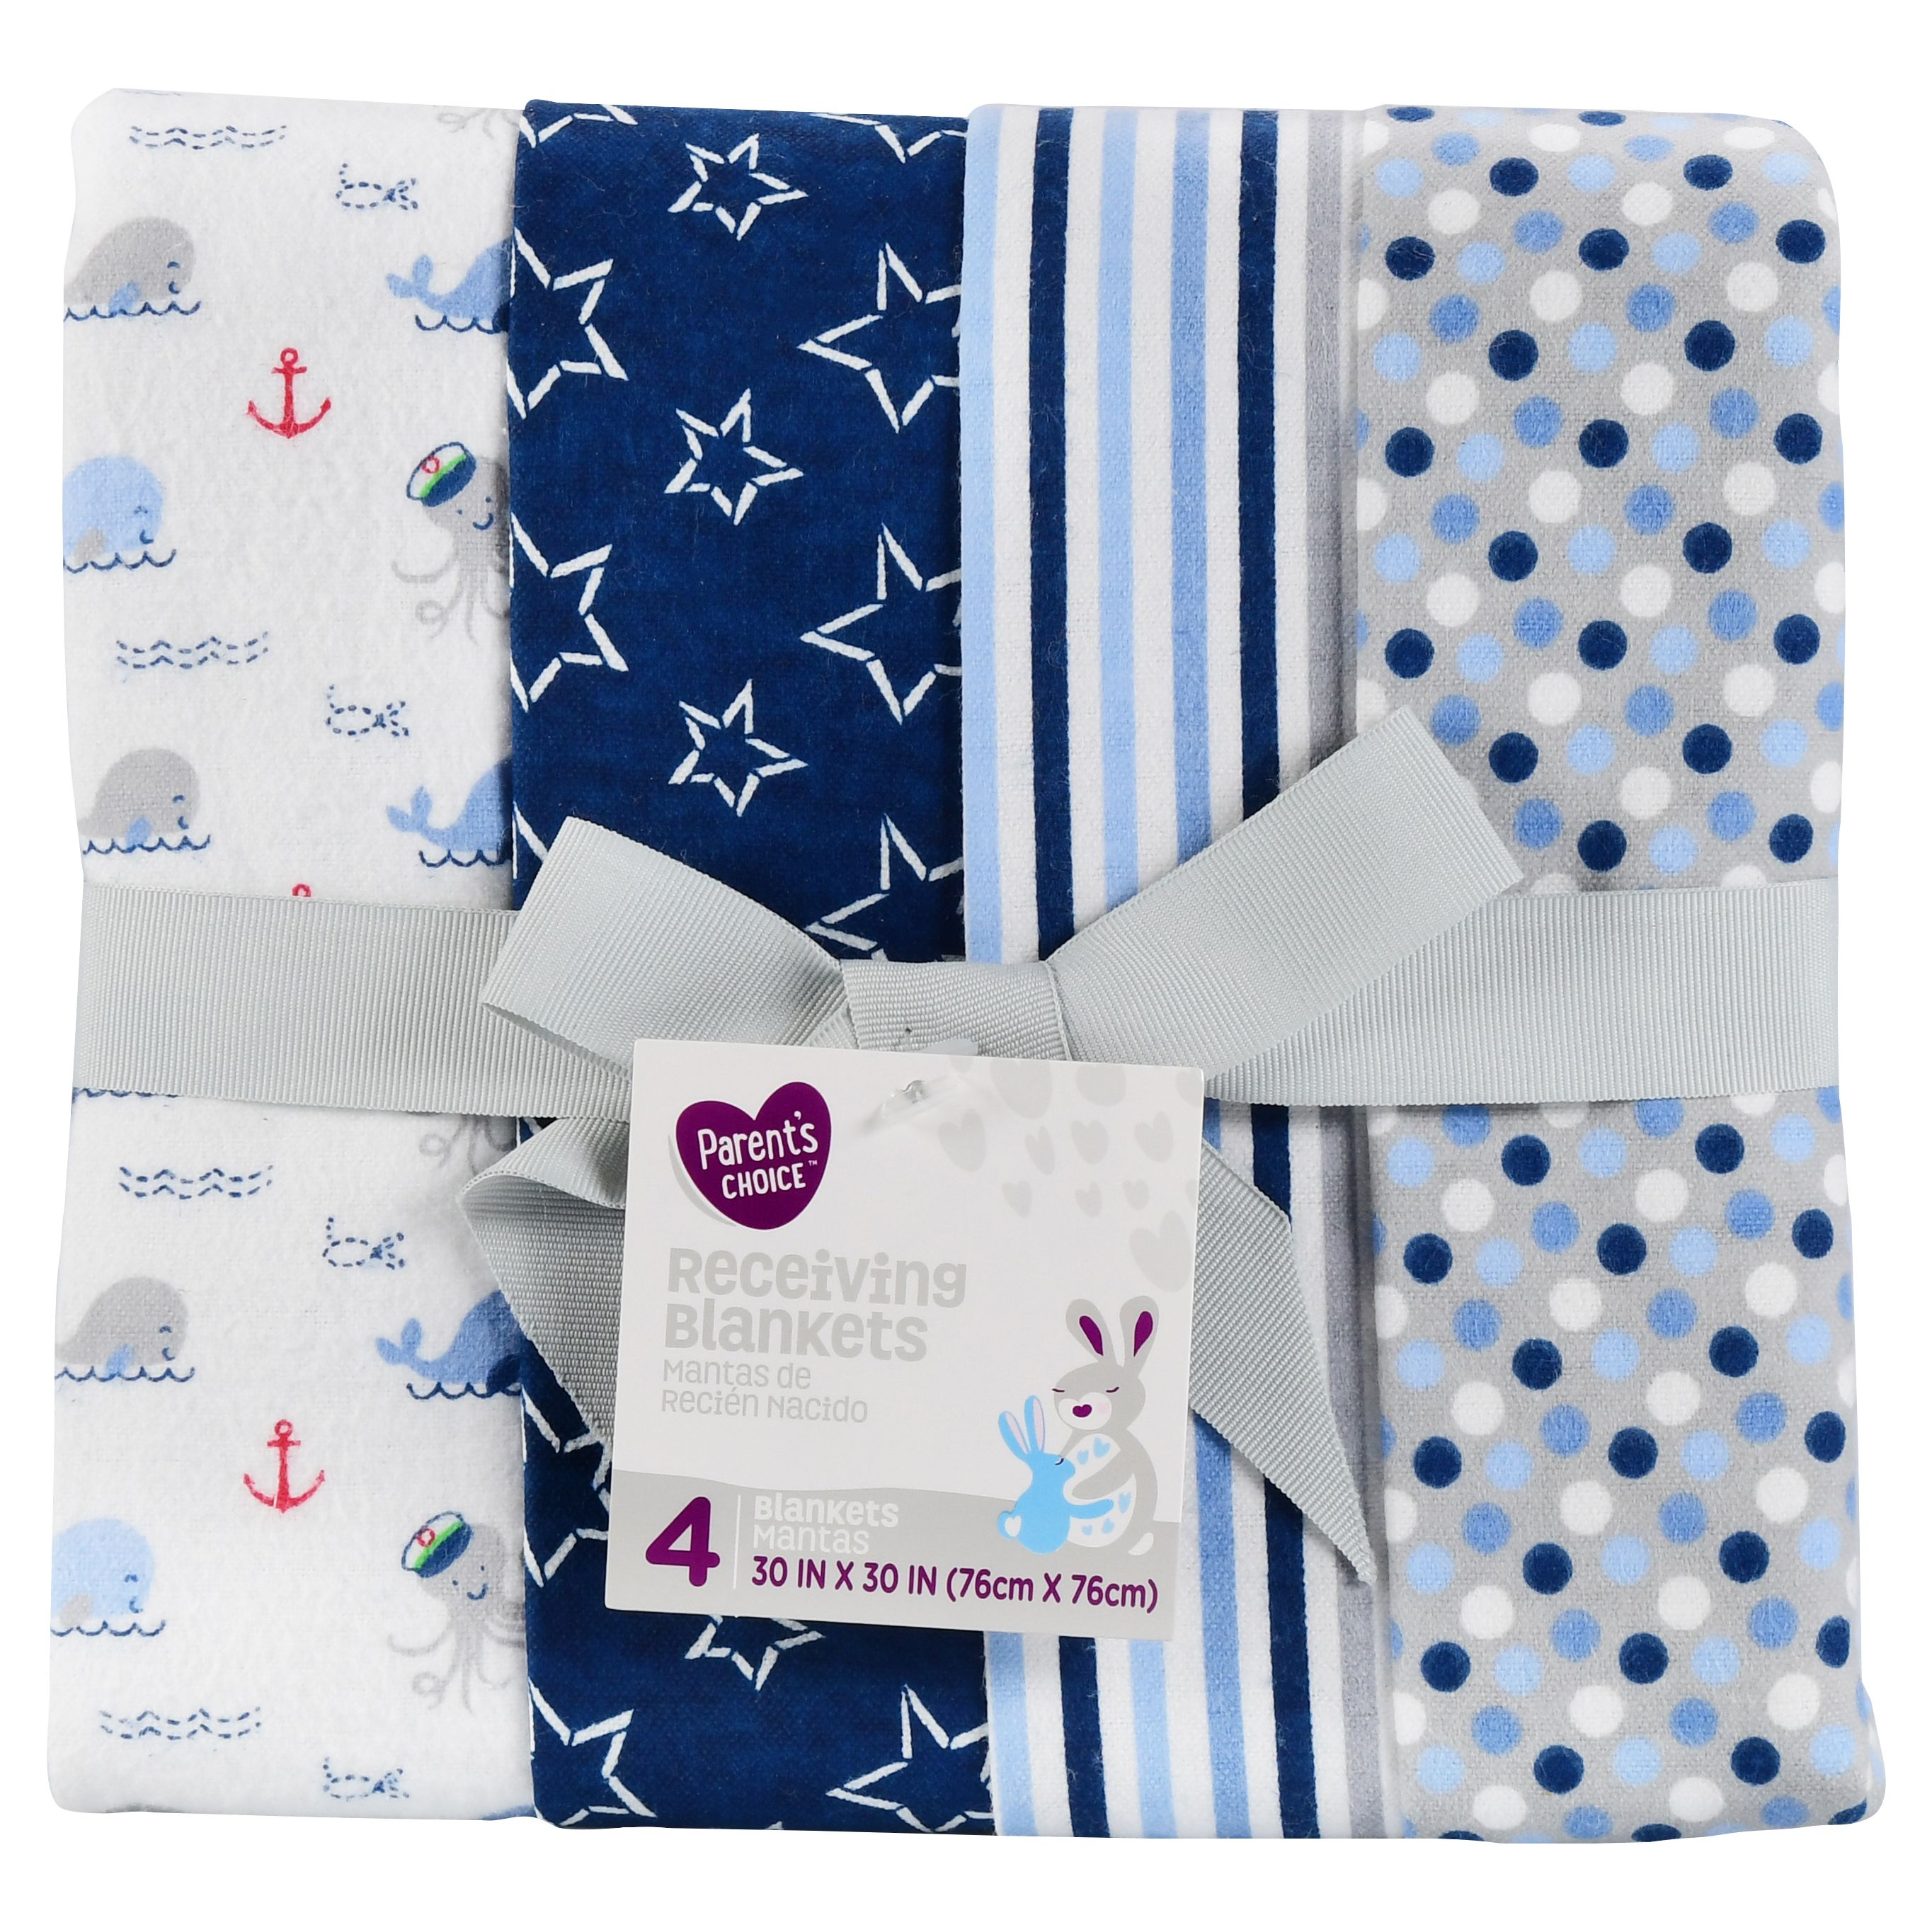 Parent's Choice Receiving Blankets, Blue, 4 Count